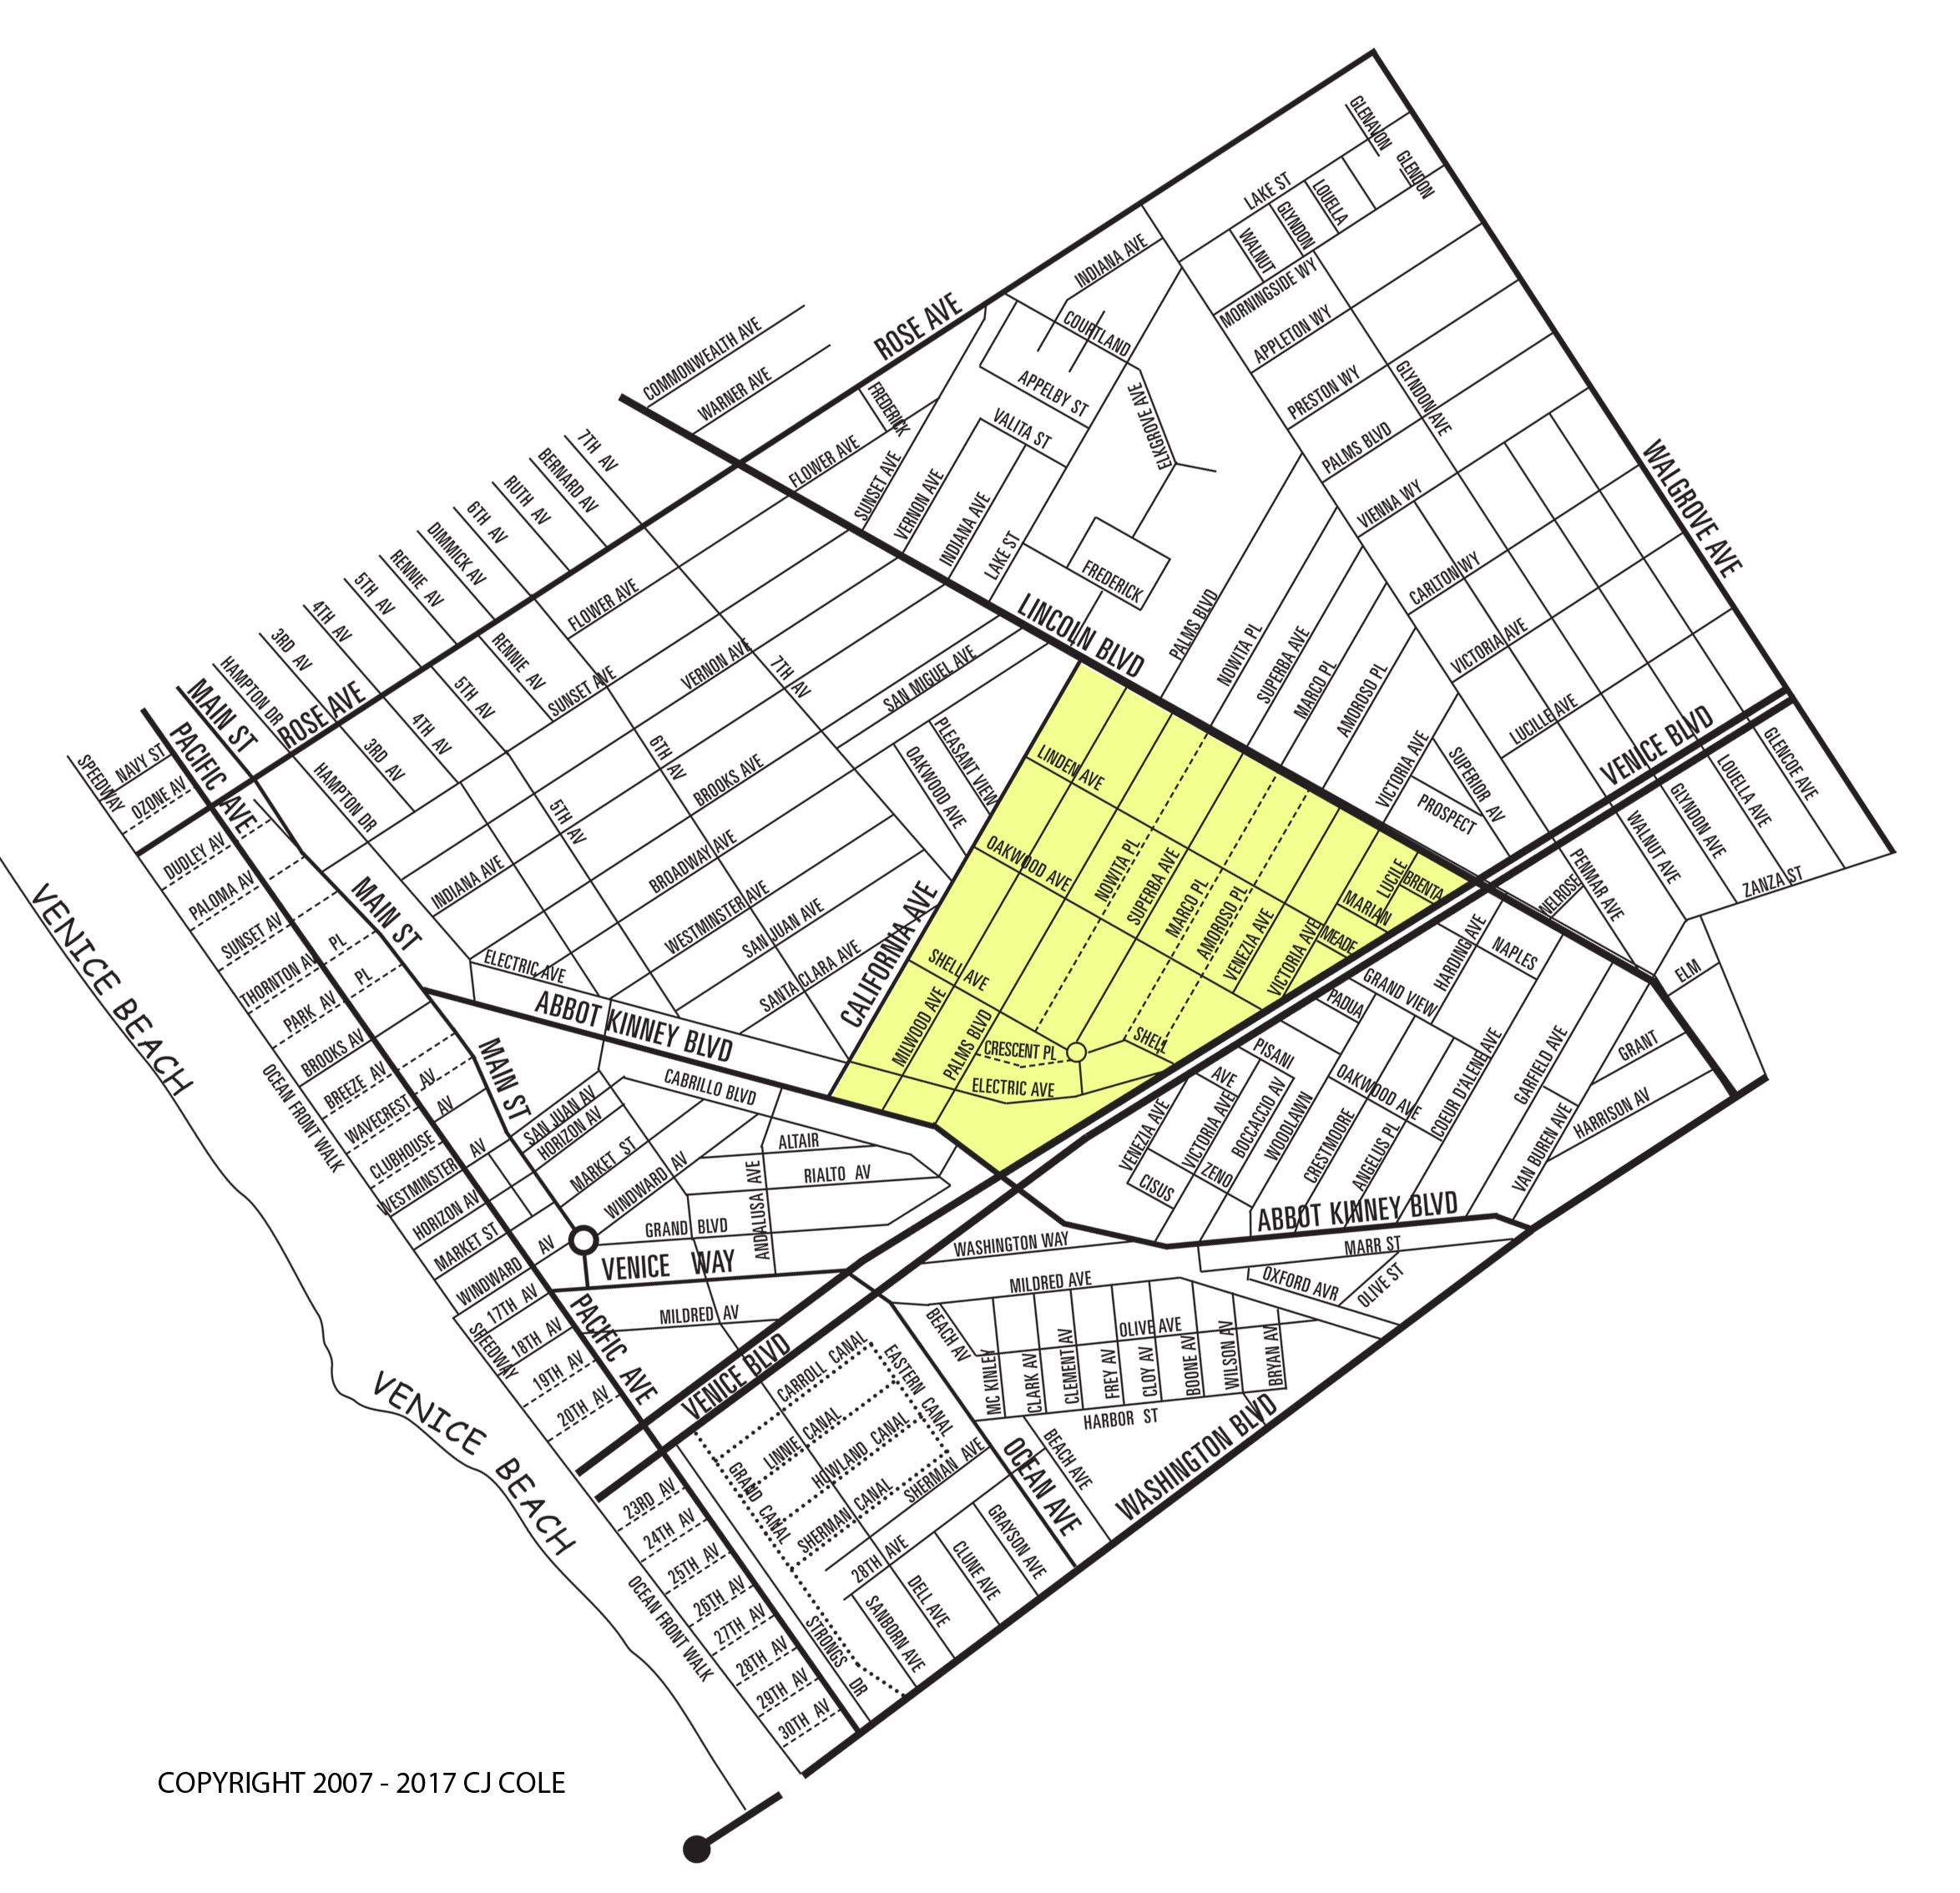 The Milwood Neighborhood Map